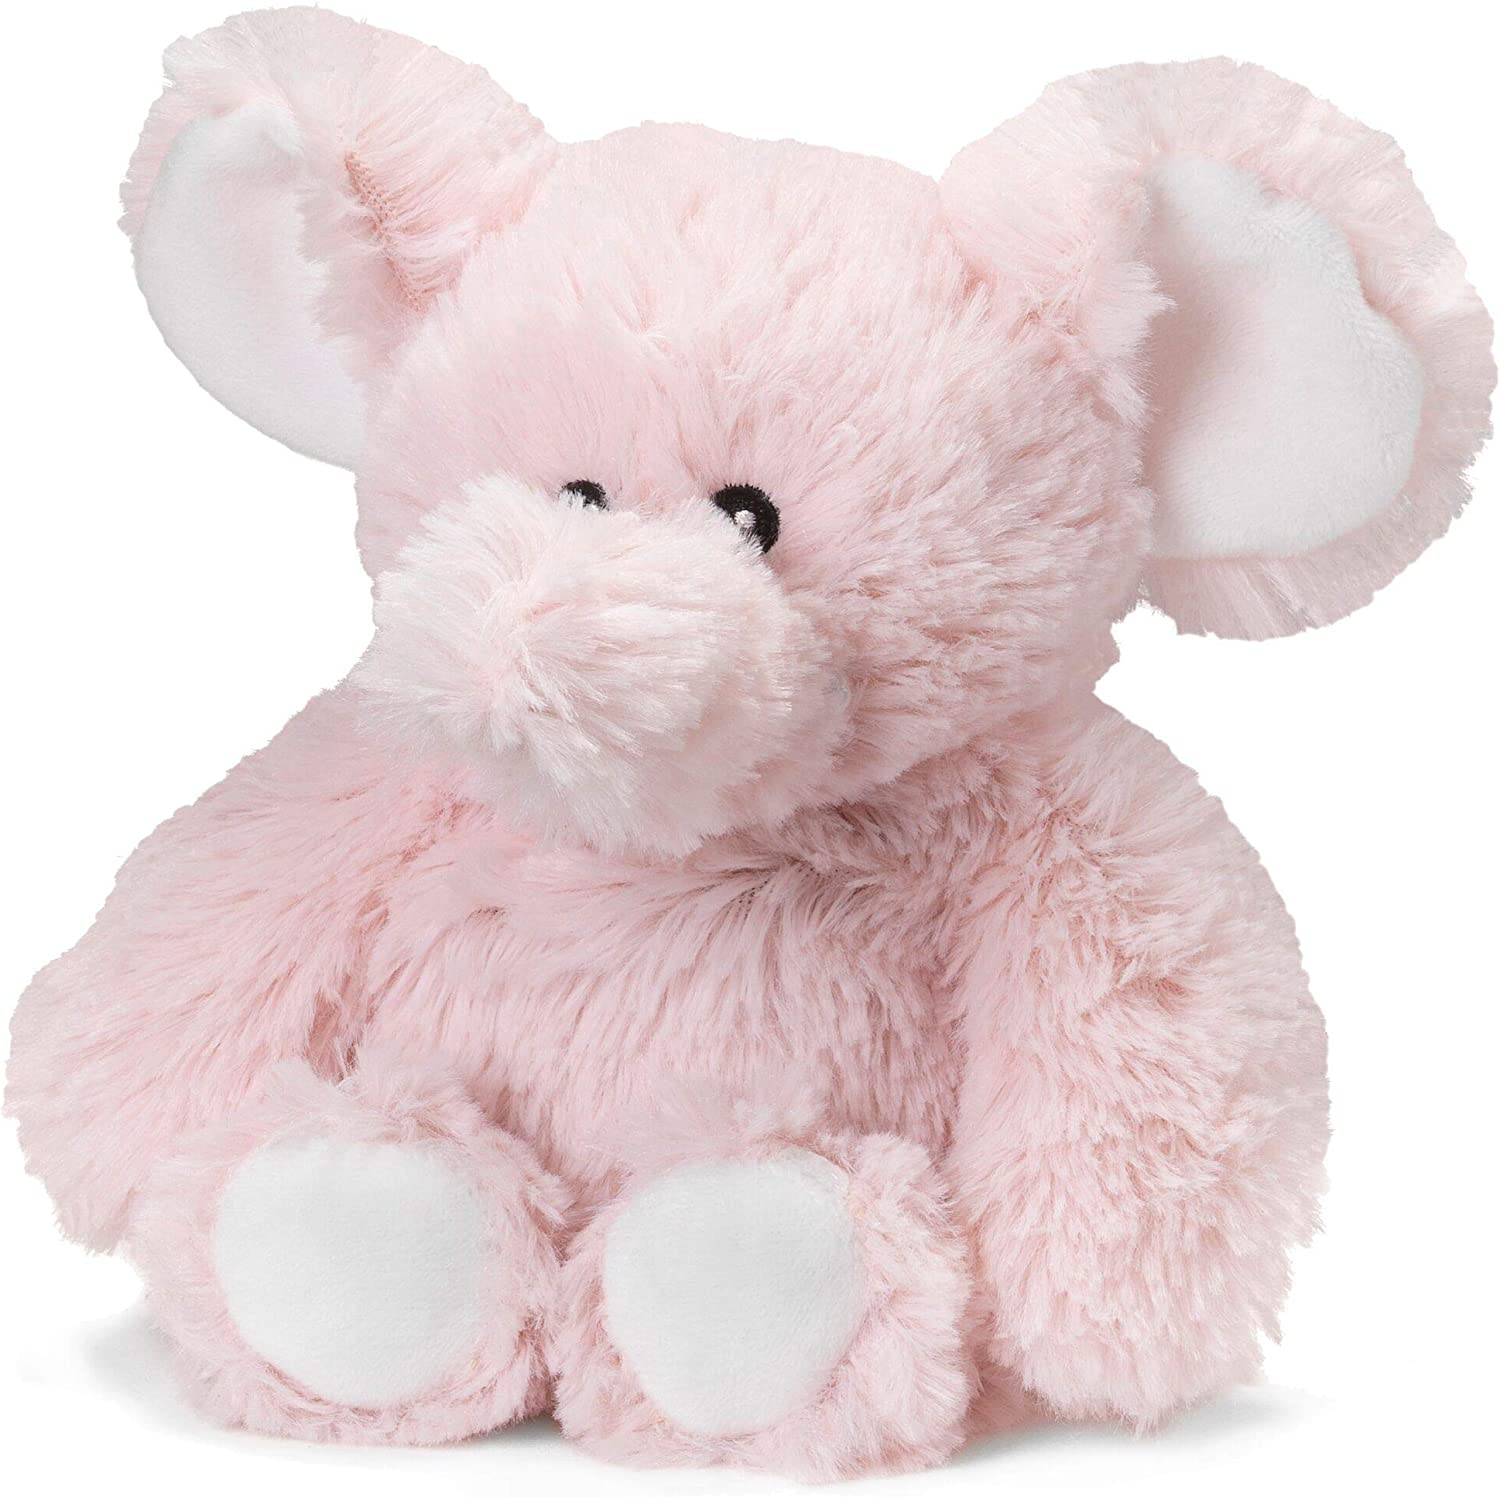 "Intelex Warmies Microwavable French Lavender Scented Plush, Jr. Elephant, Pink, 6"" x 2"" x 4"""